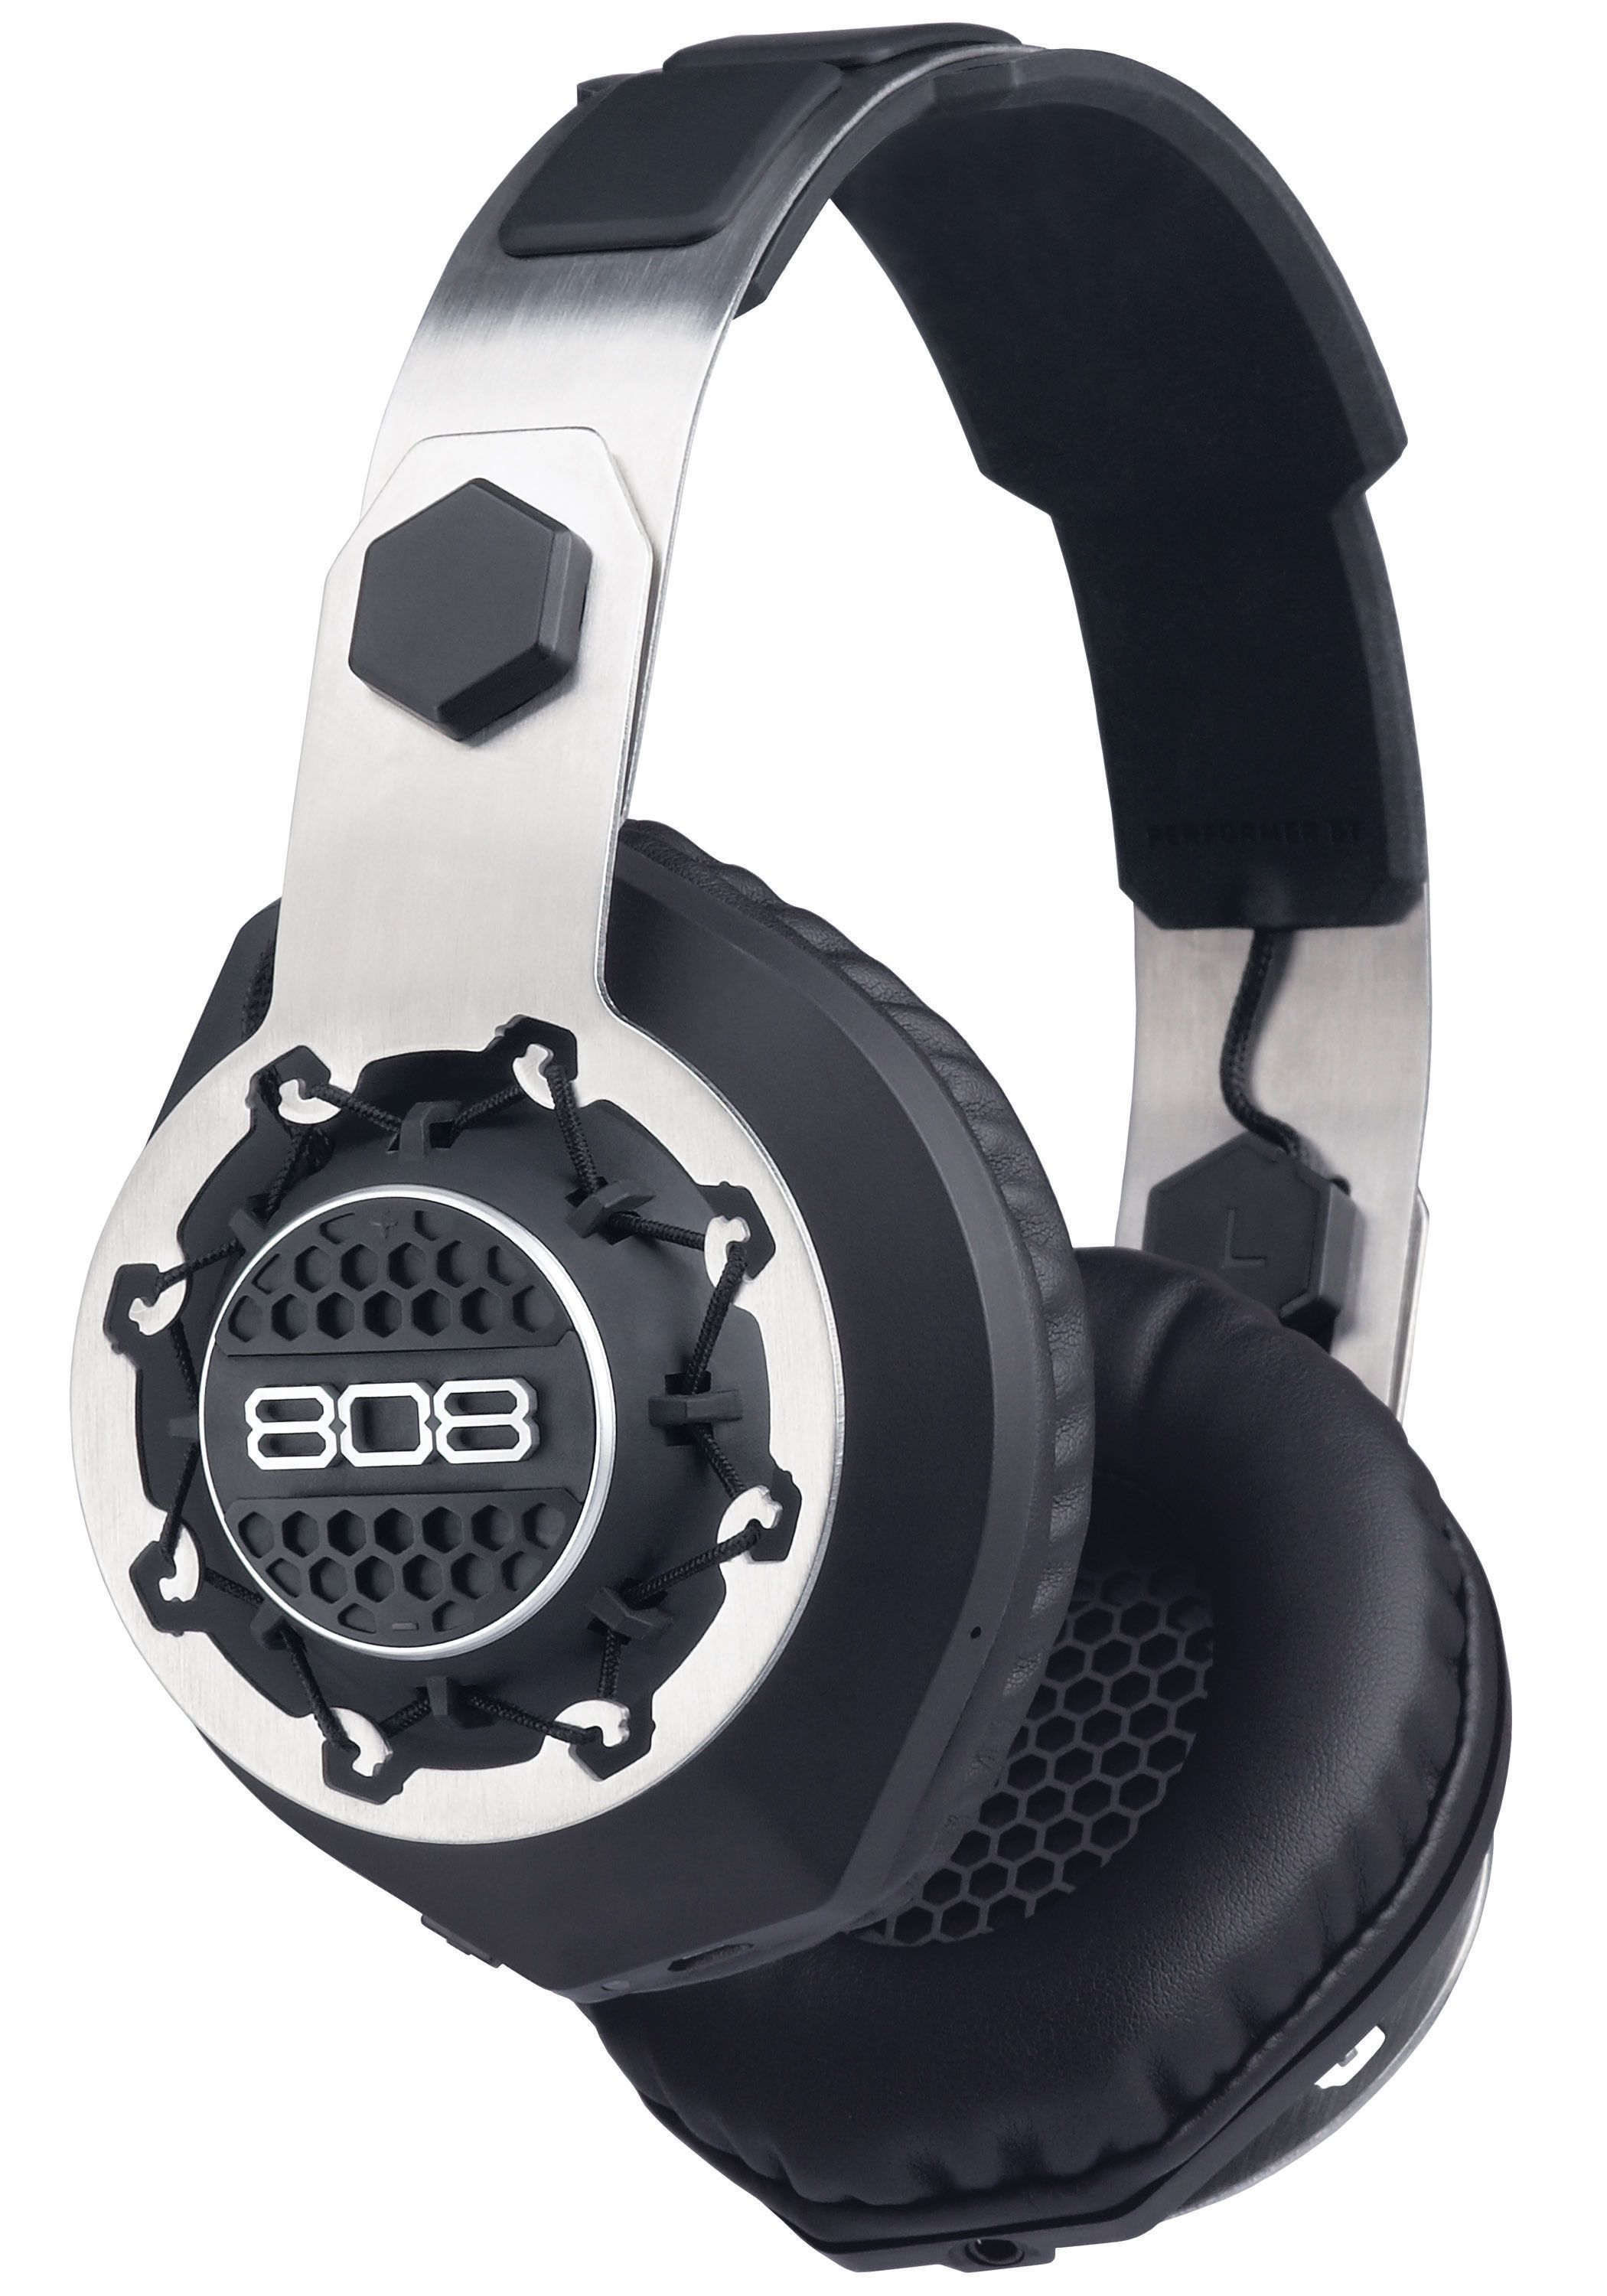 Bluetooth Headphones With Wired Option | 808 Performer Bt Headphones Flex Fit Design 99 99 And Has Both